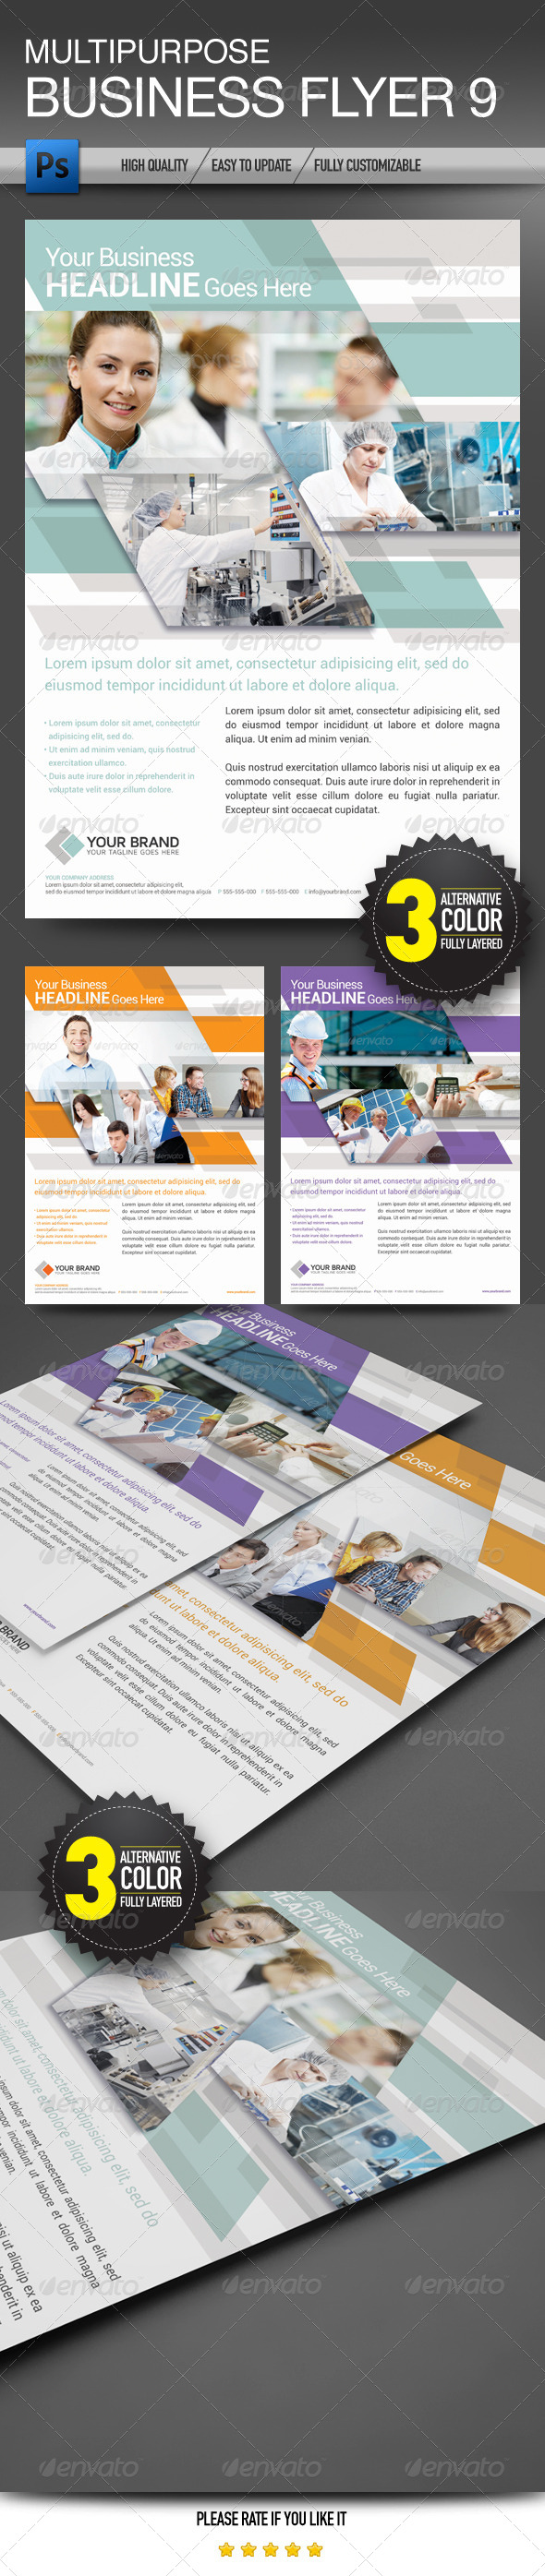 GraphicRiver Multipurpose Business Flyer 9 7055940